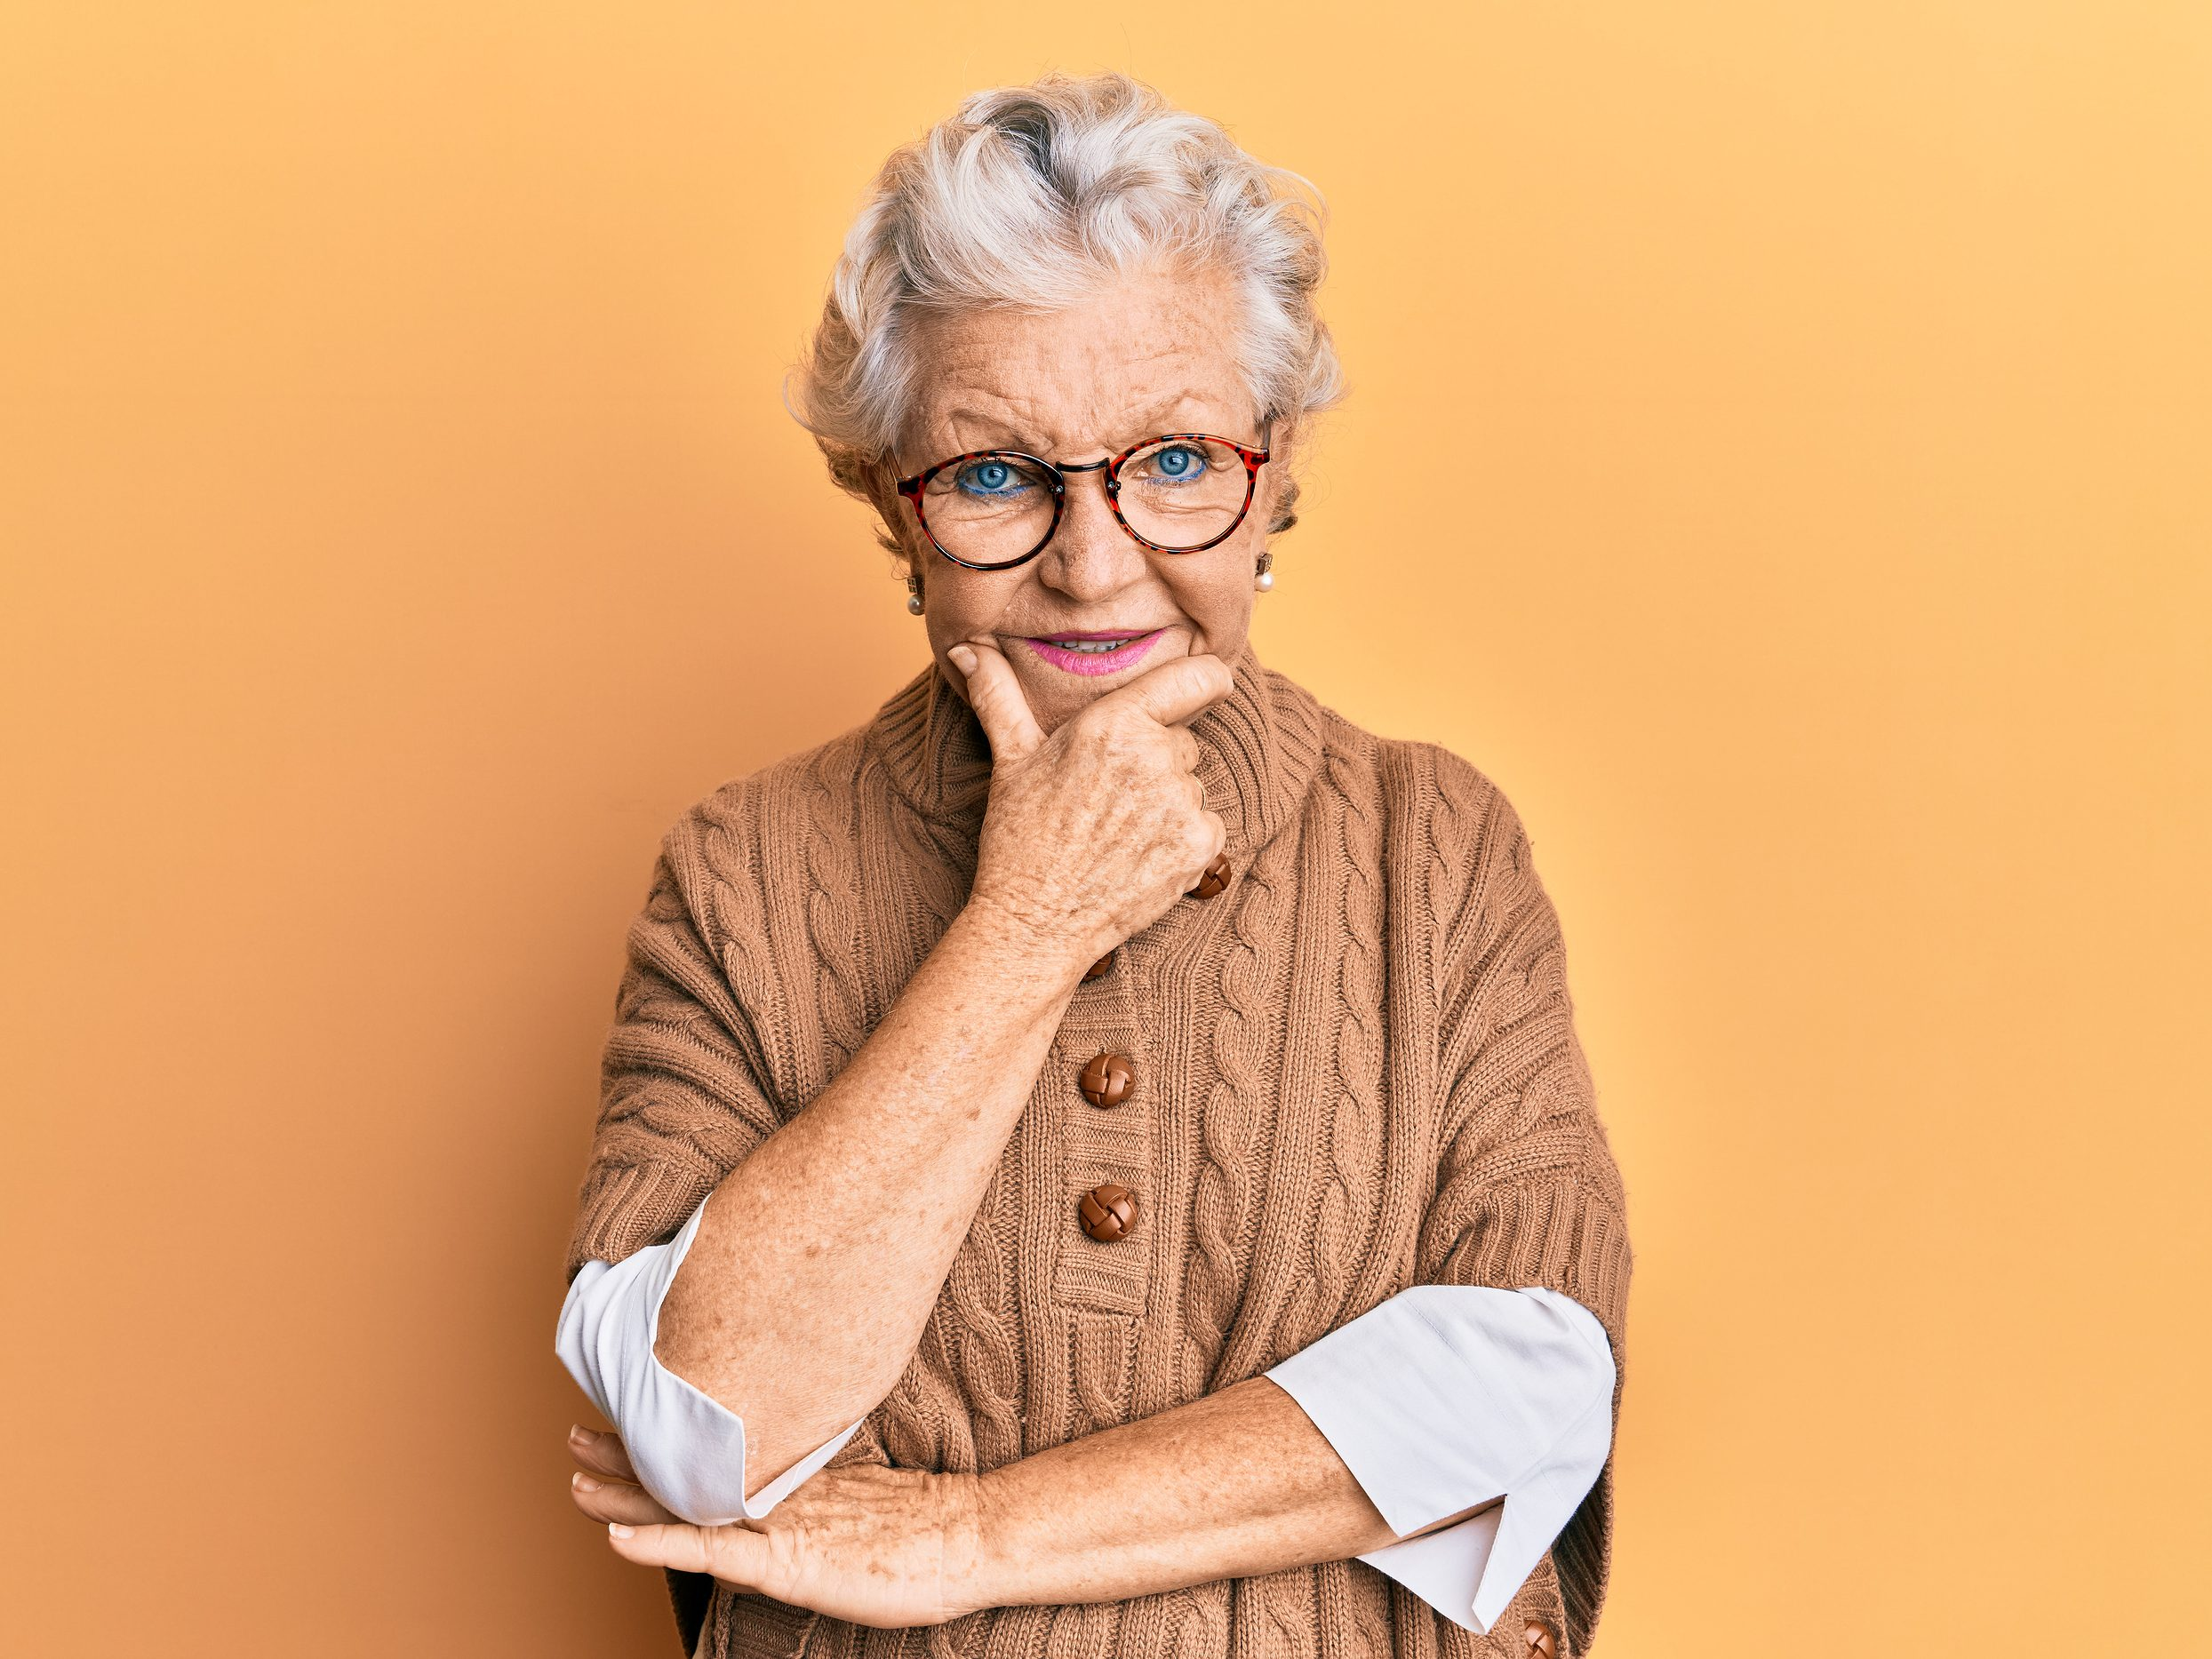 Senior grey-haired woman looking confident at the camera smiling with crossed arms and hand raised on chin. thinking positive.